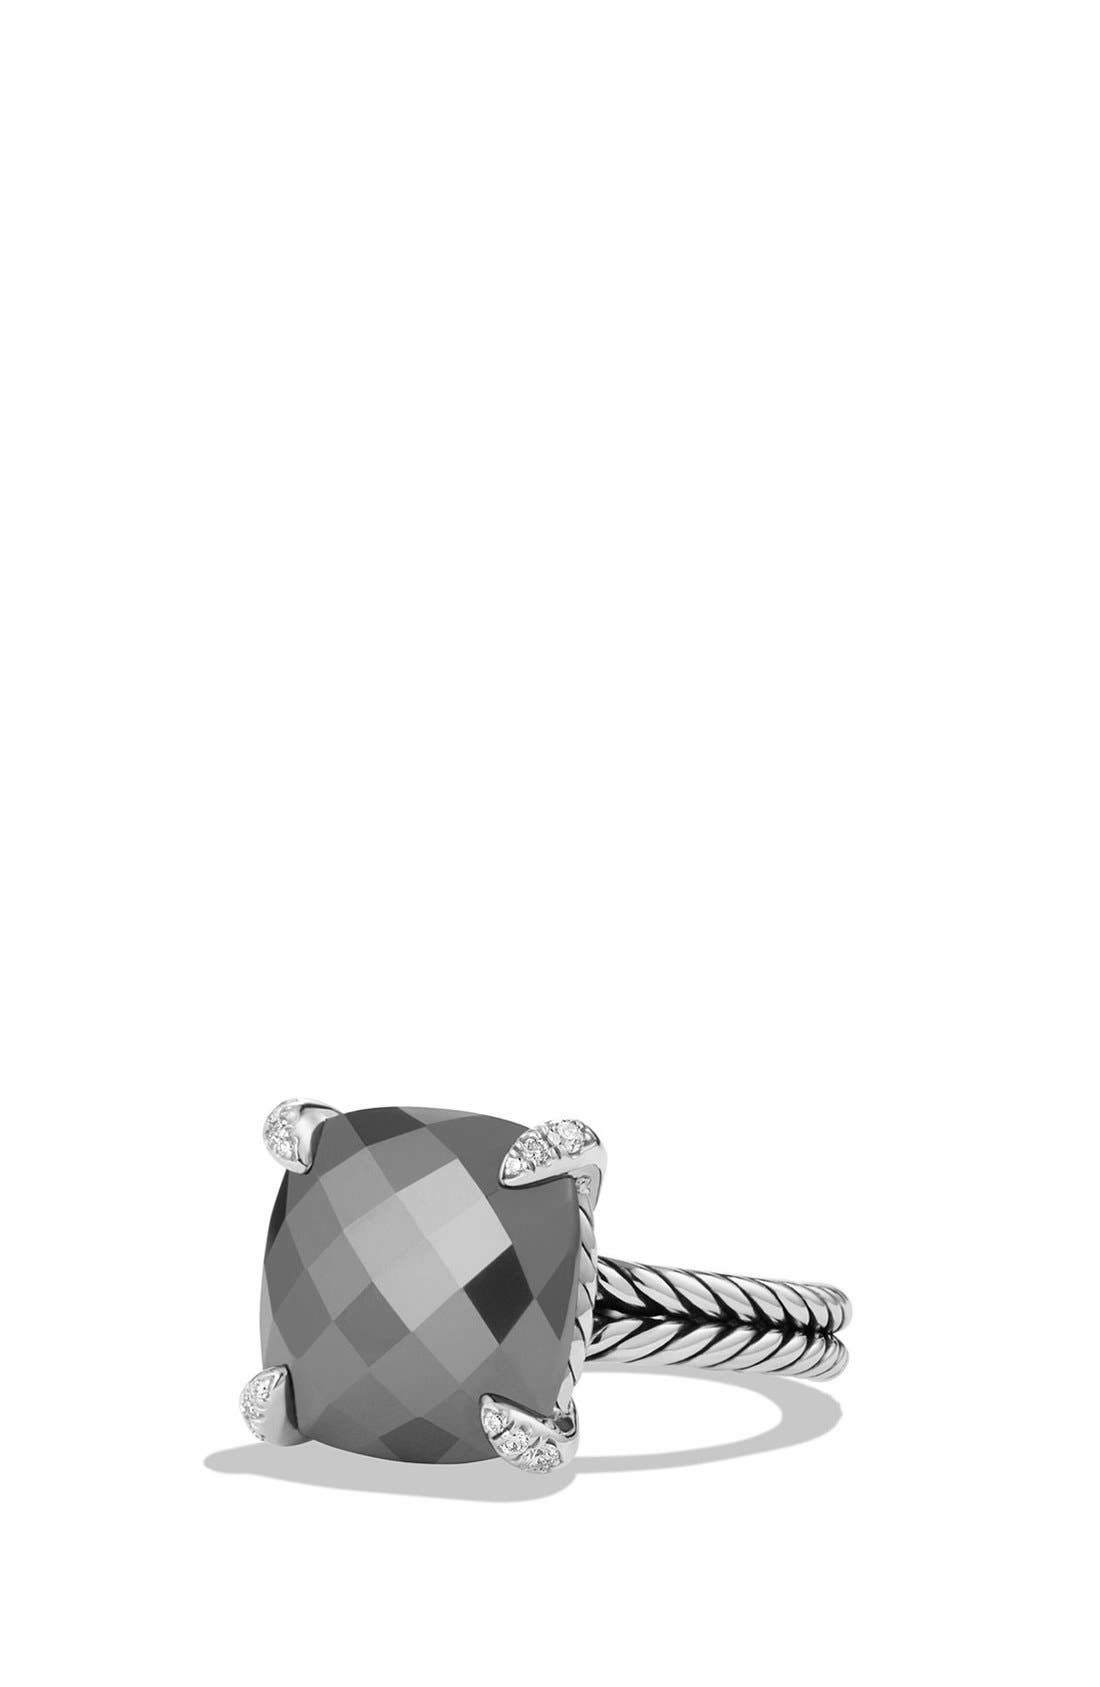 'Châtelaine' Ring with Semiprecious Stone and Diamonds,                         Main,                         color, Silver/ Hematine